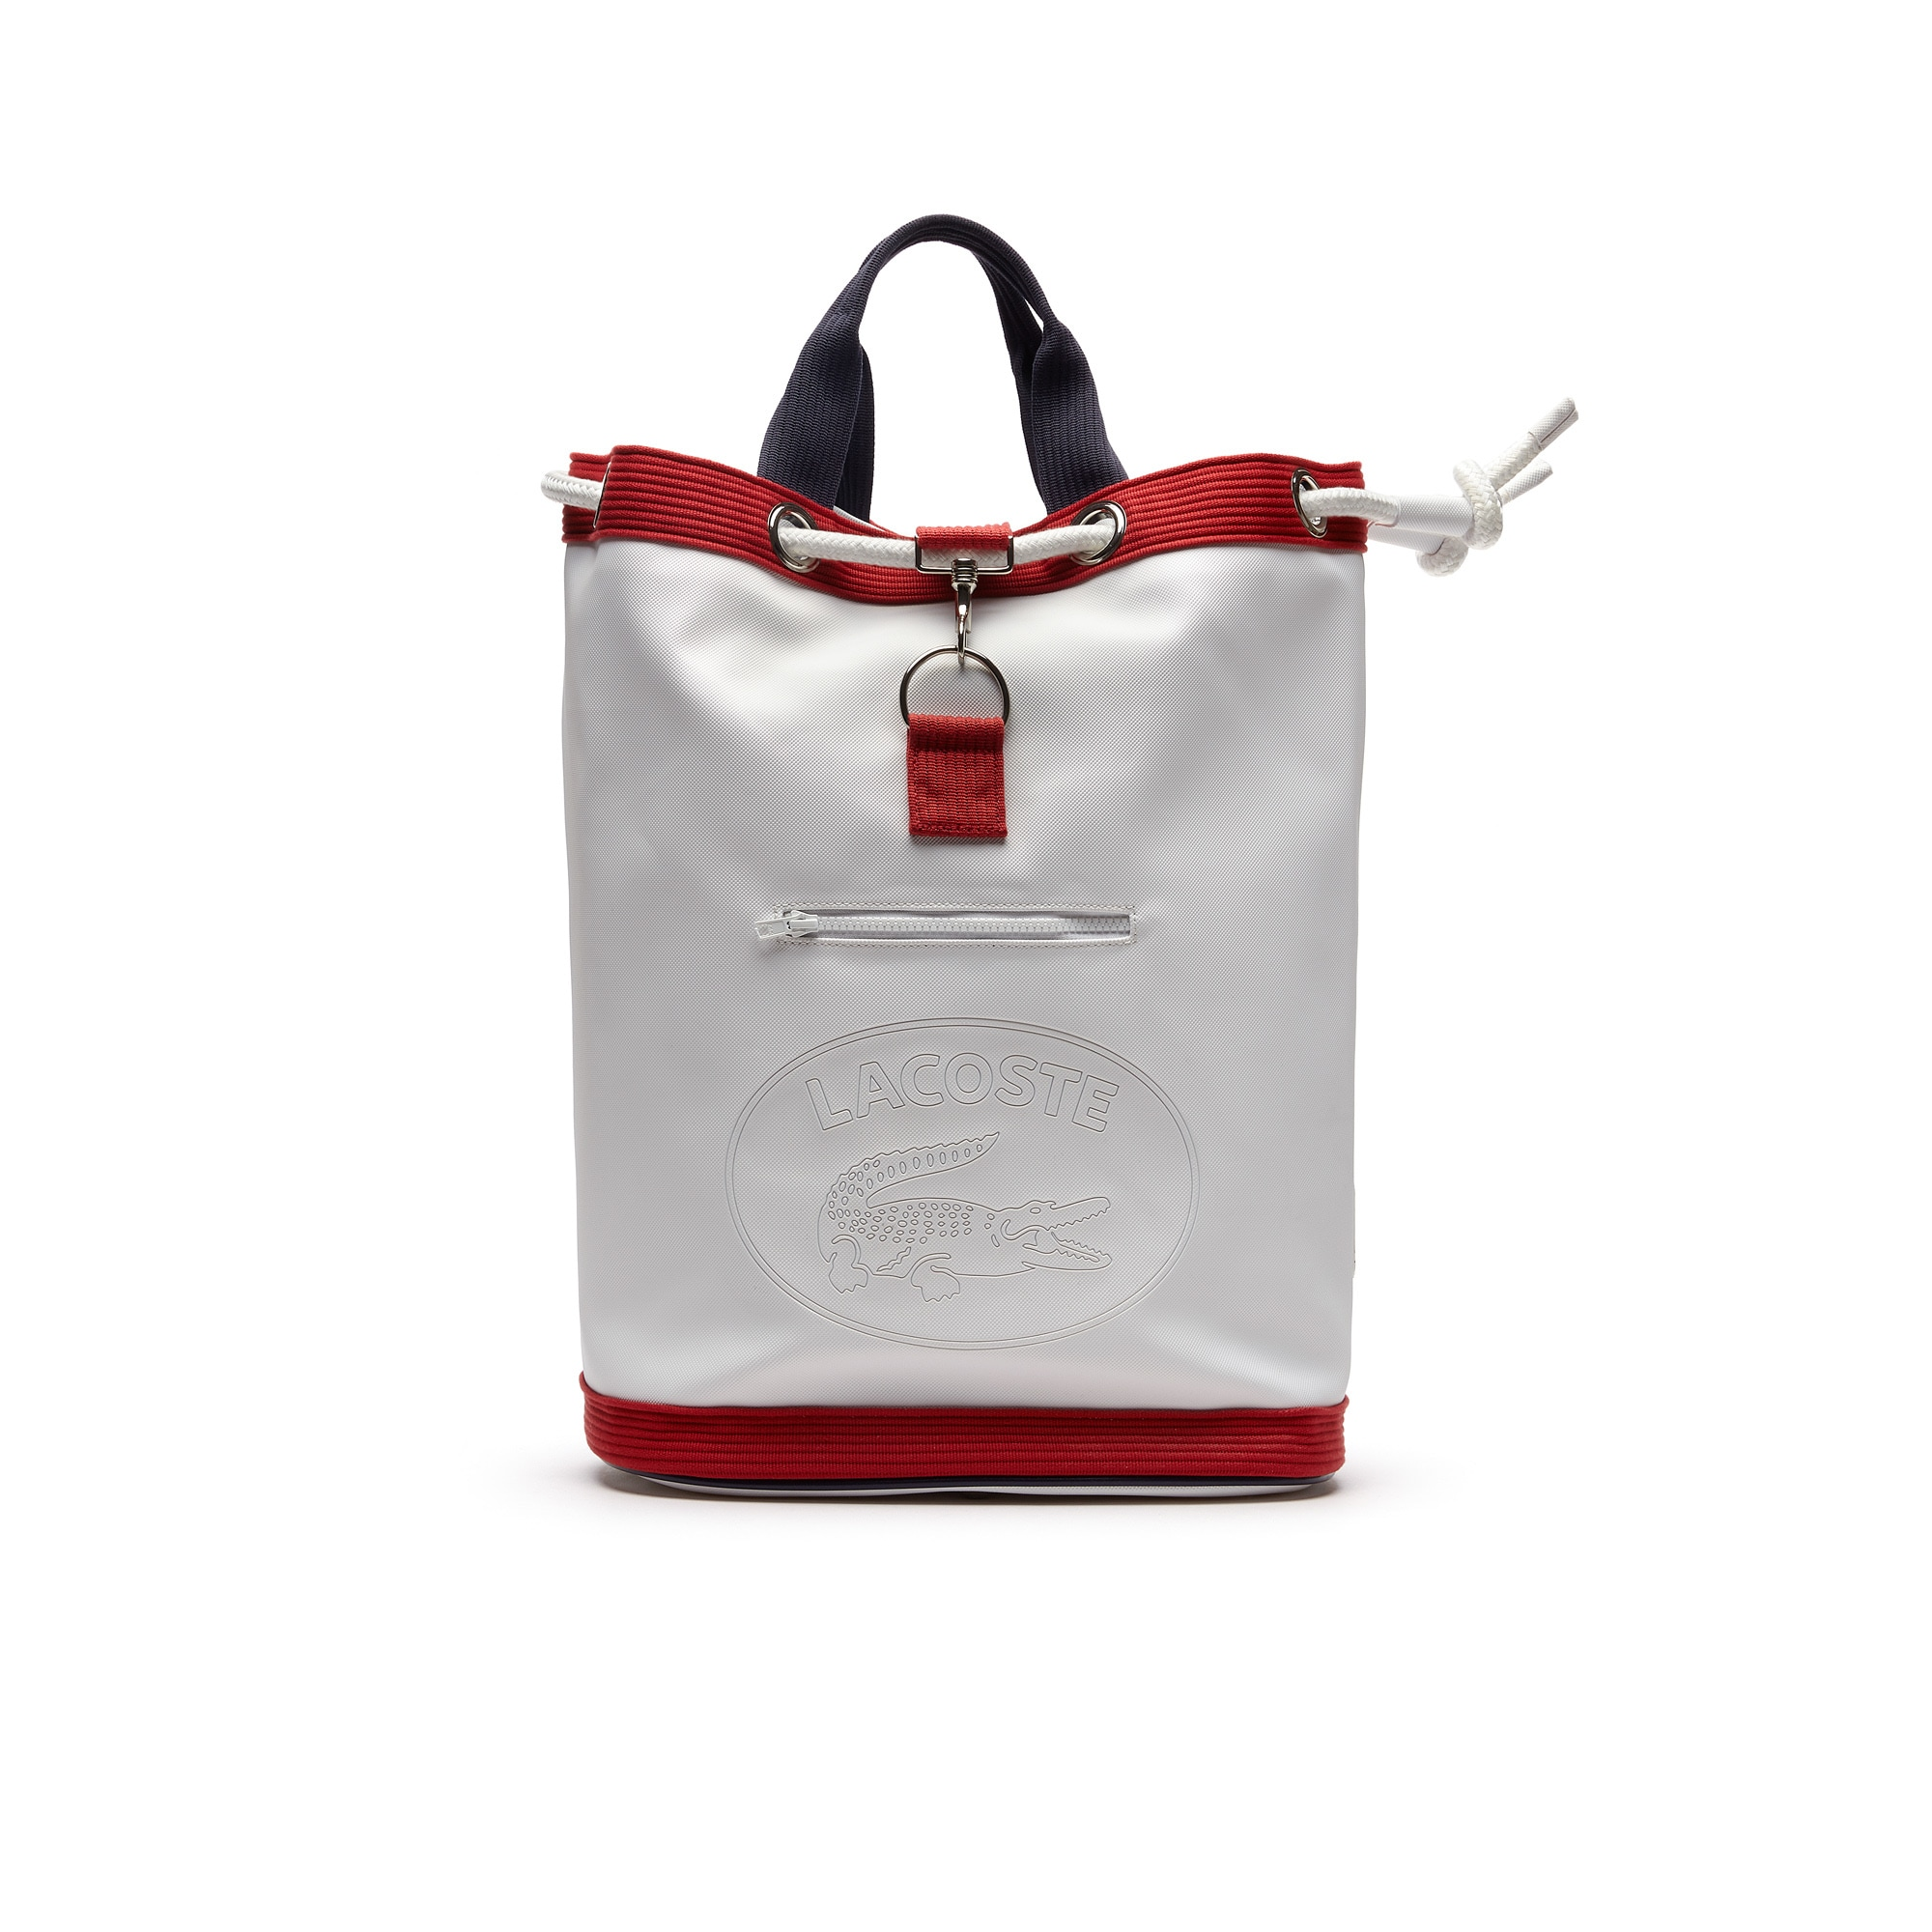 Men's Limited Edition 85th Anniversary Petit Piqué Nautical Bag